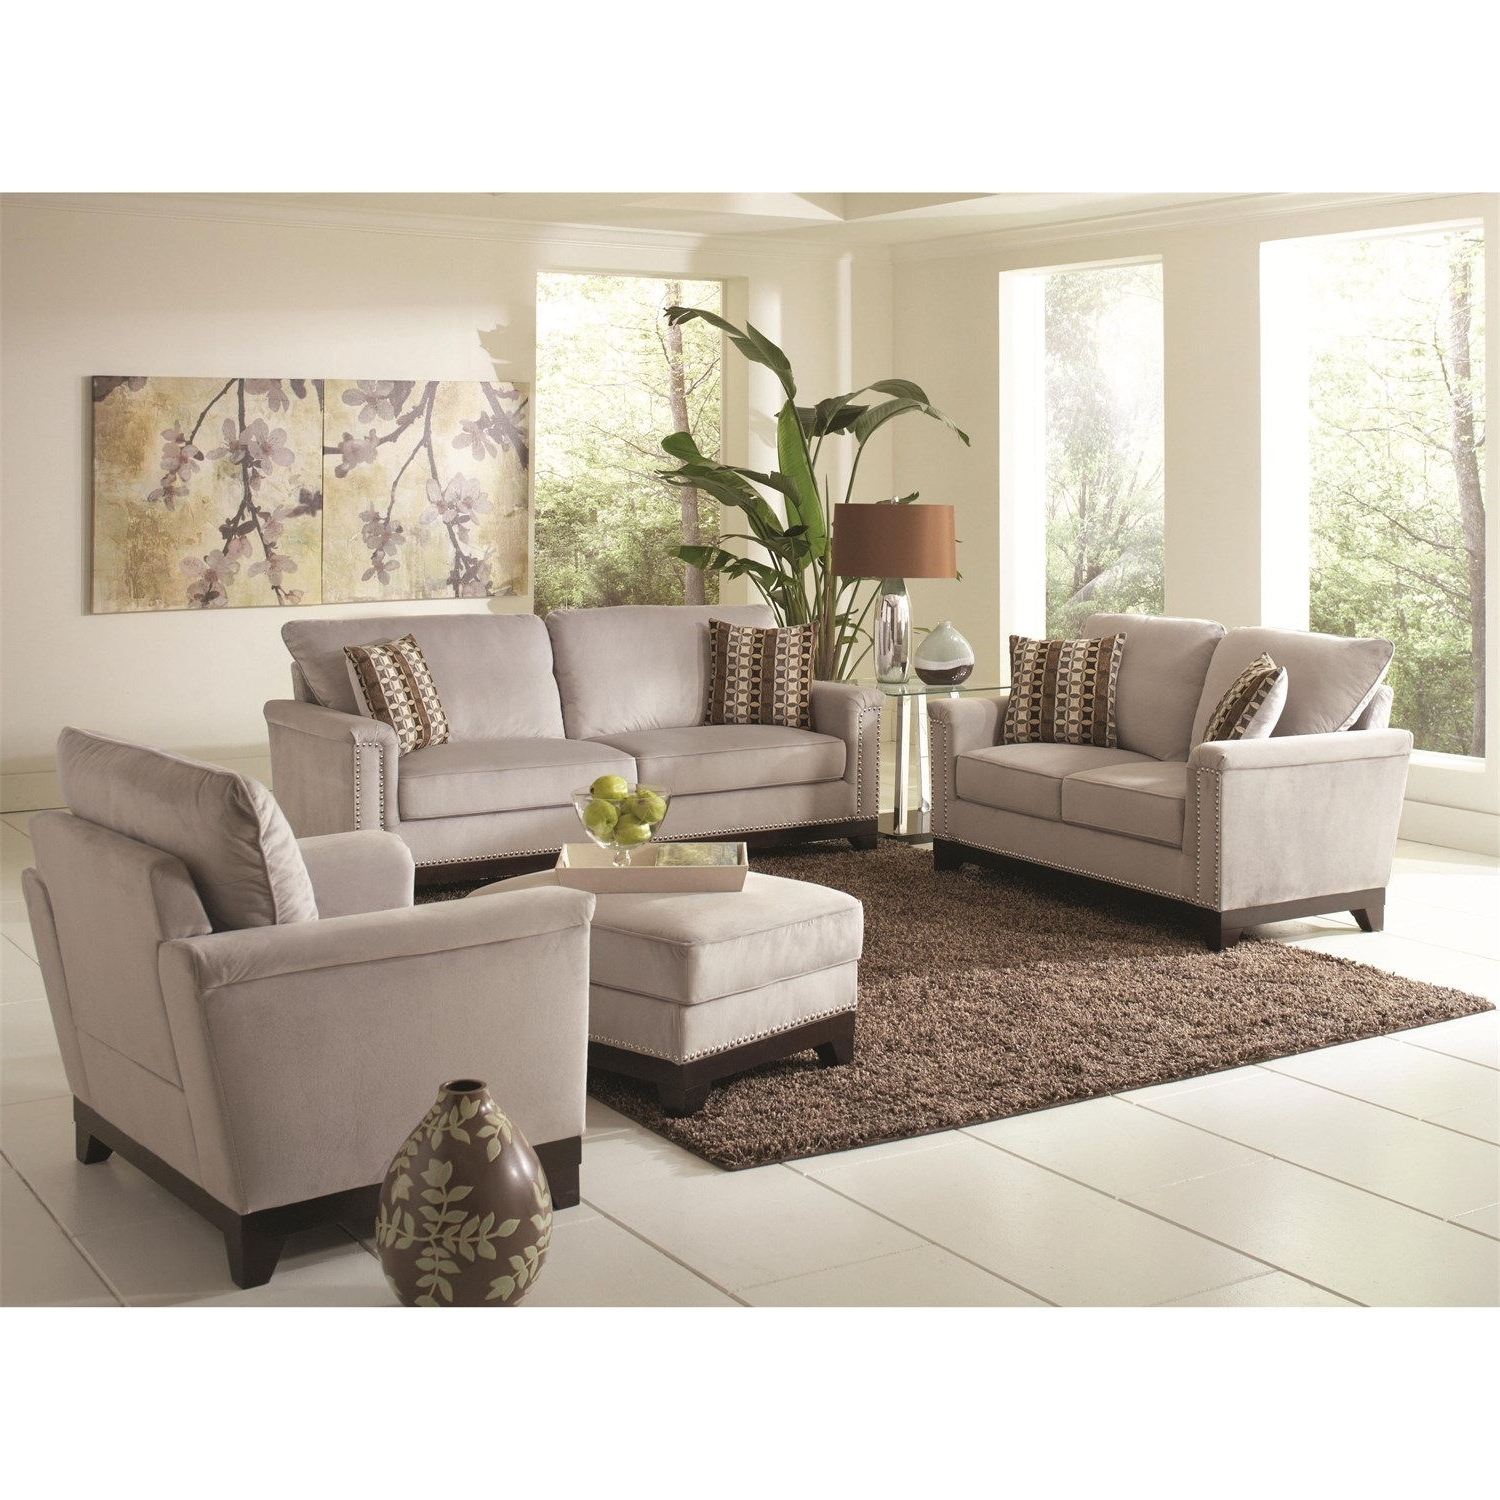 Furniture : Tufted Leather Sofa Brown Sofa Bed On Sale Edmonton Regarding Most Up To Date Ottawa Sale Sectional Sofas (View 11 of 20)